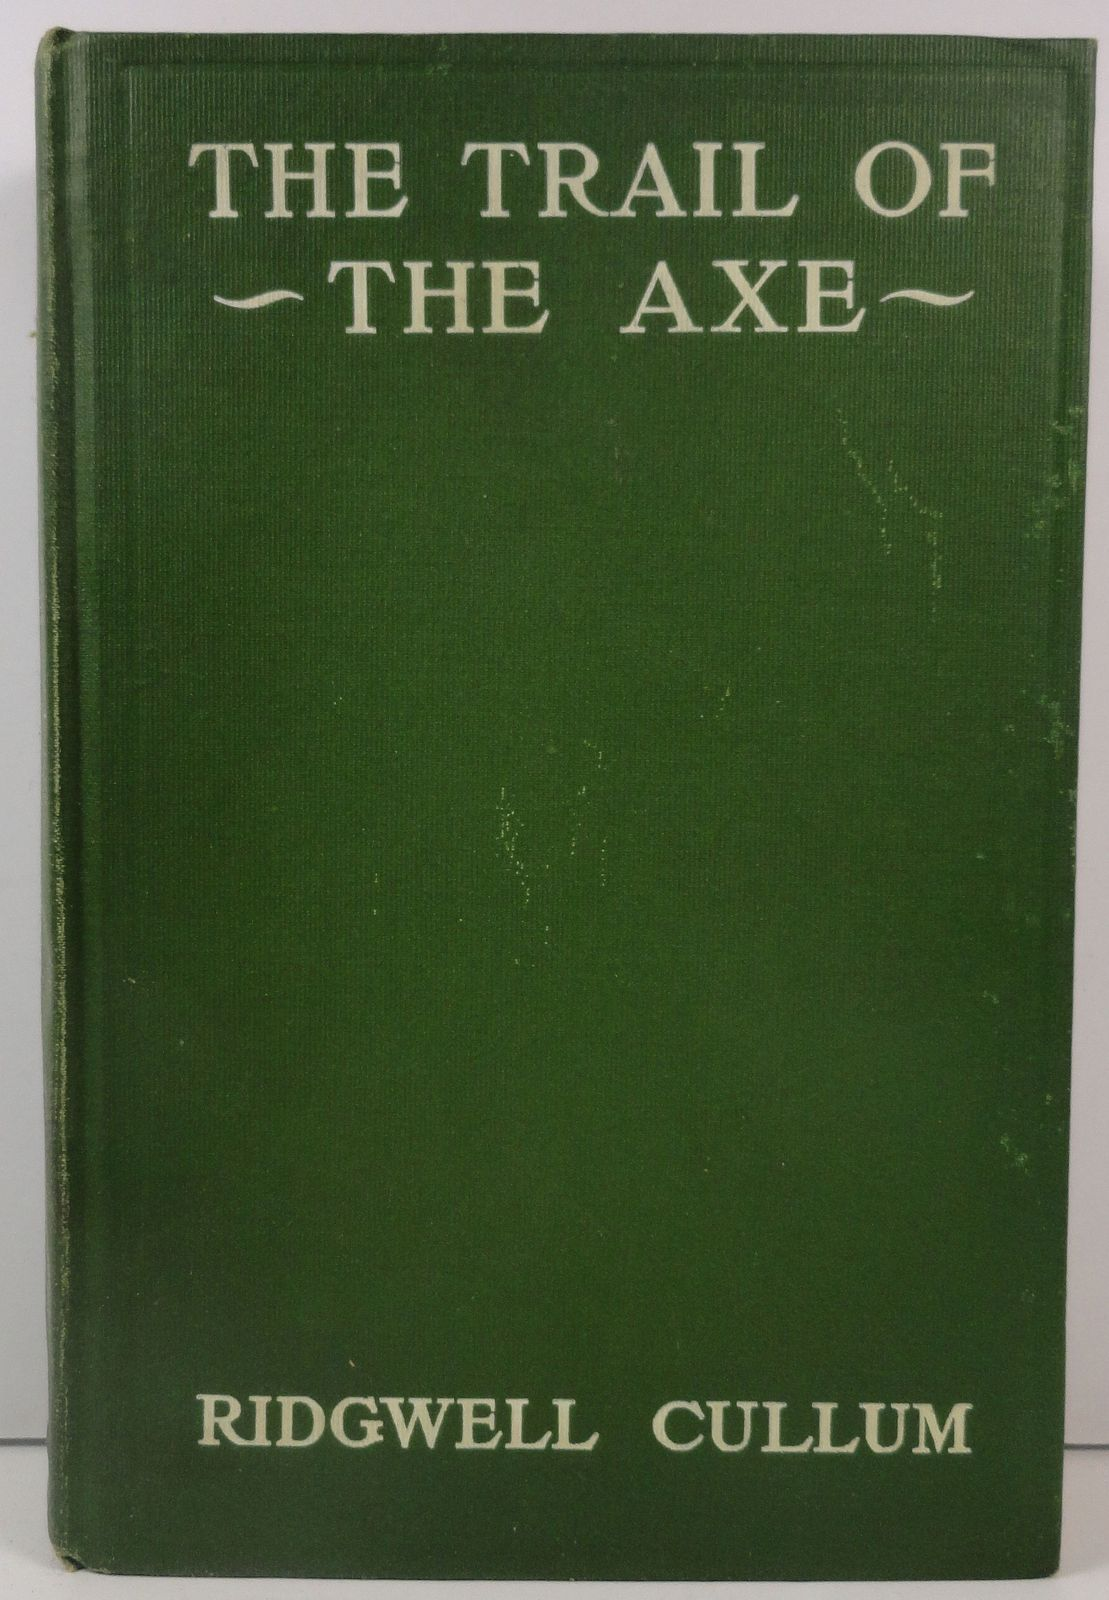 The Trail of the Axe by Ridgwell Cullum 1910 George W Jacobs